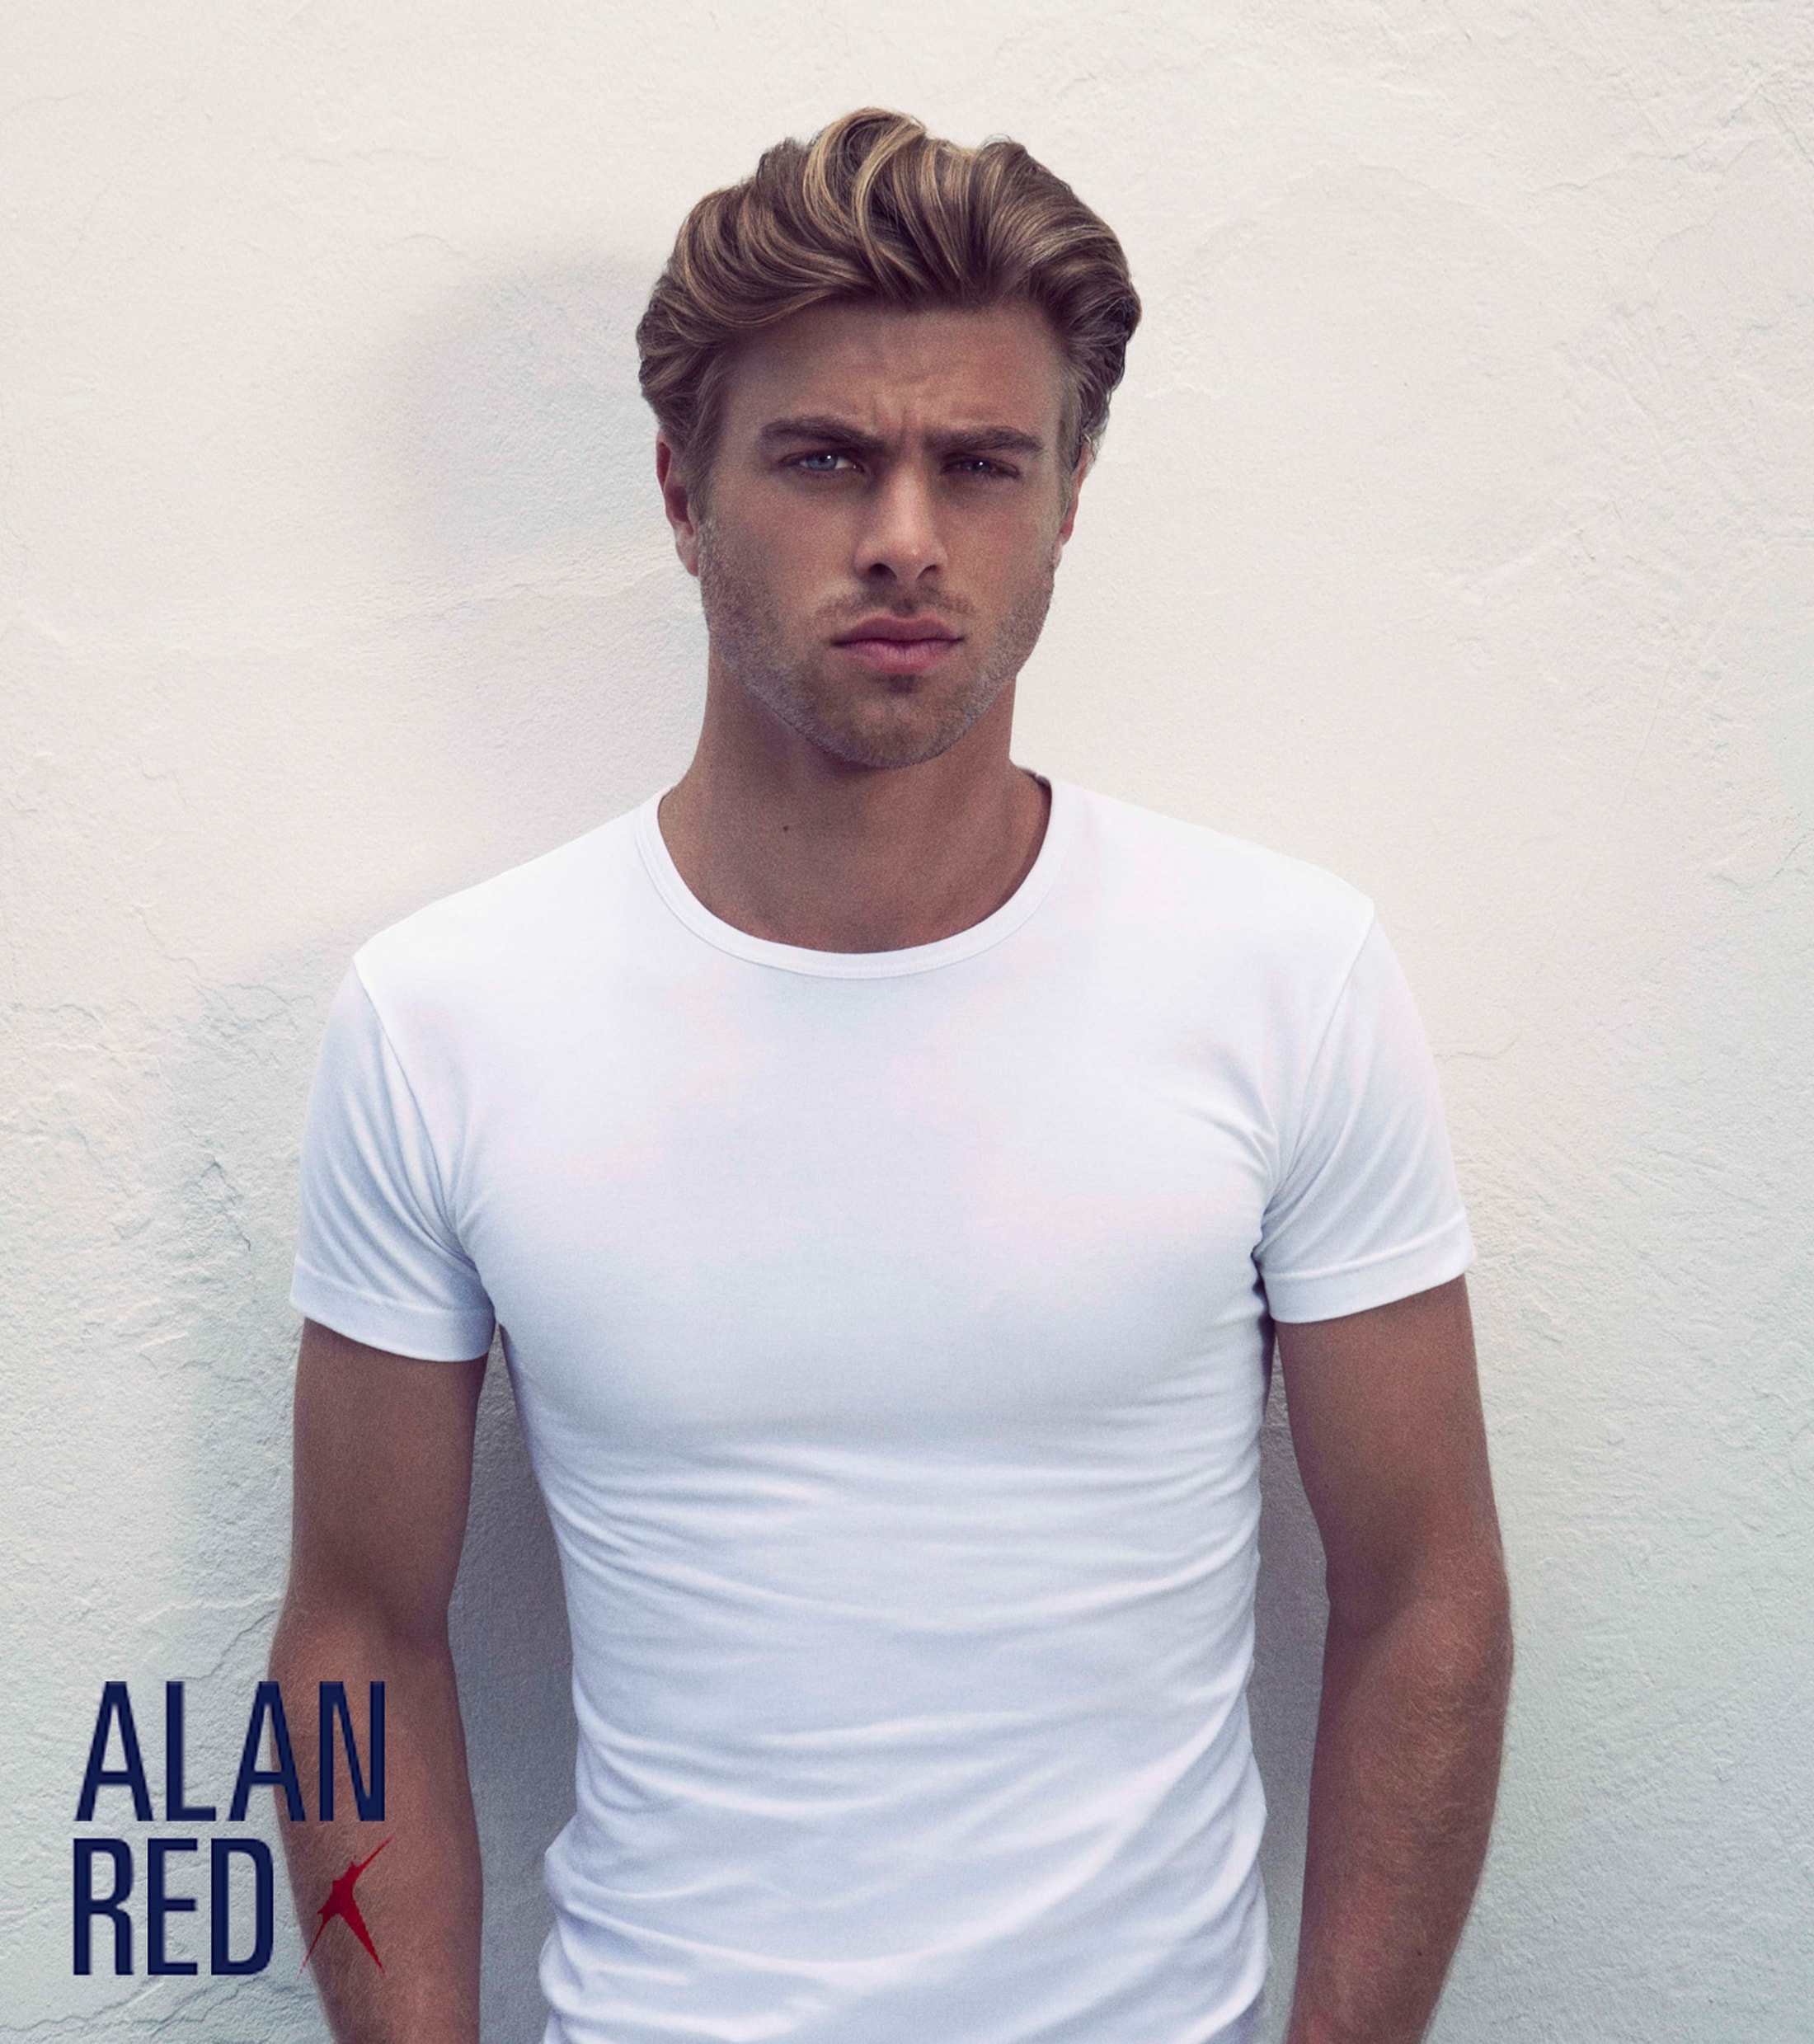 Alan Red Ottawa T-shirt Stretch White 2-Pack foto 3